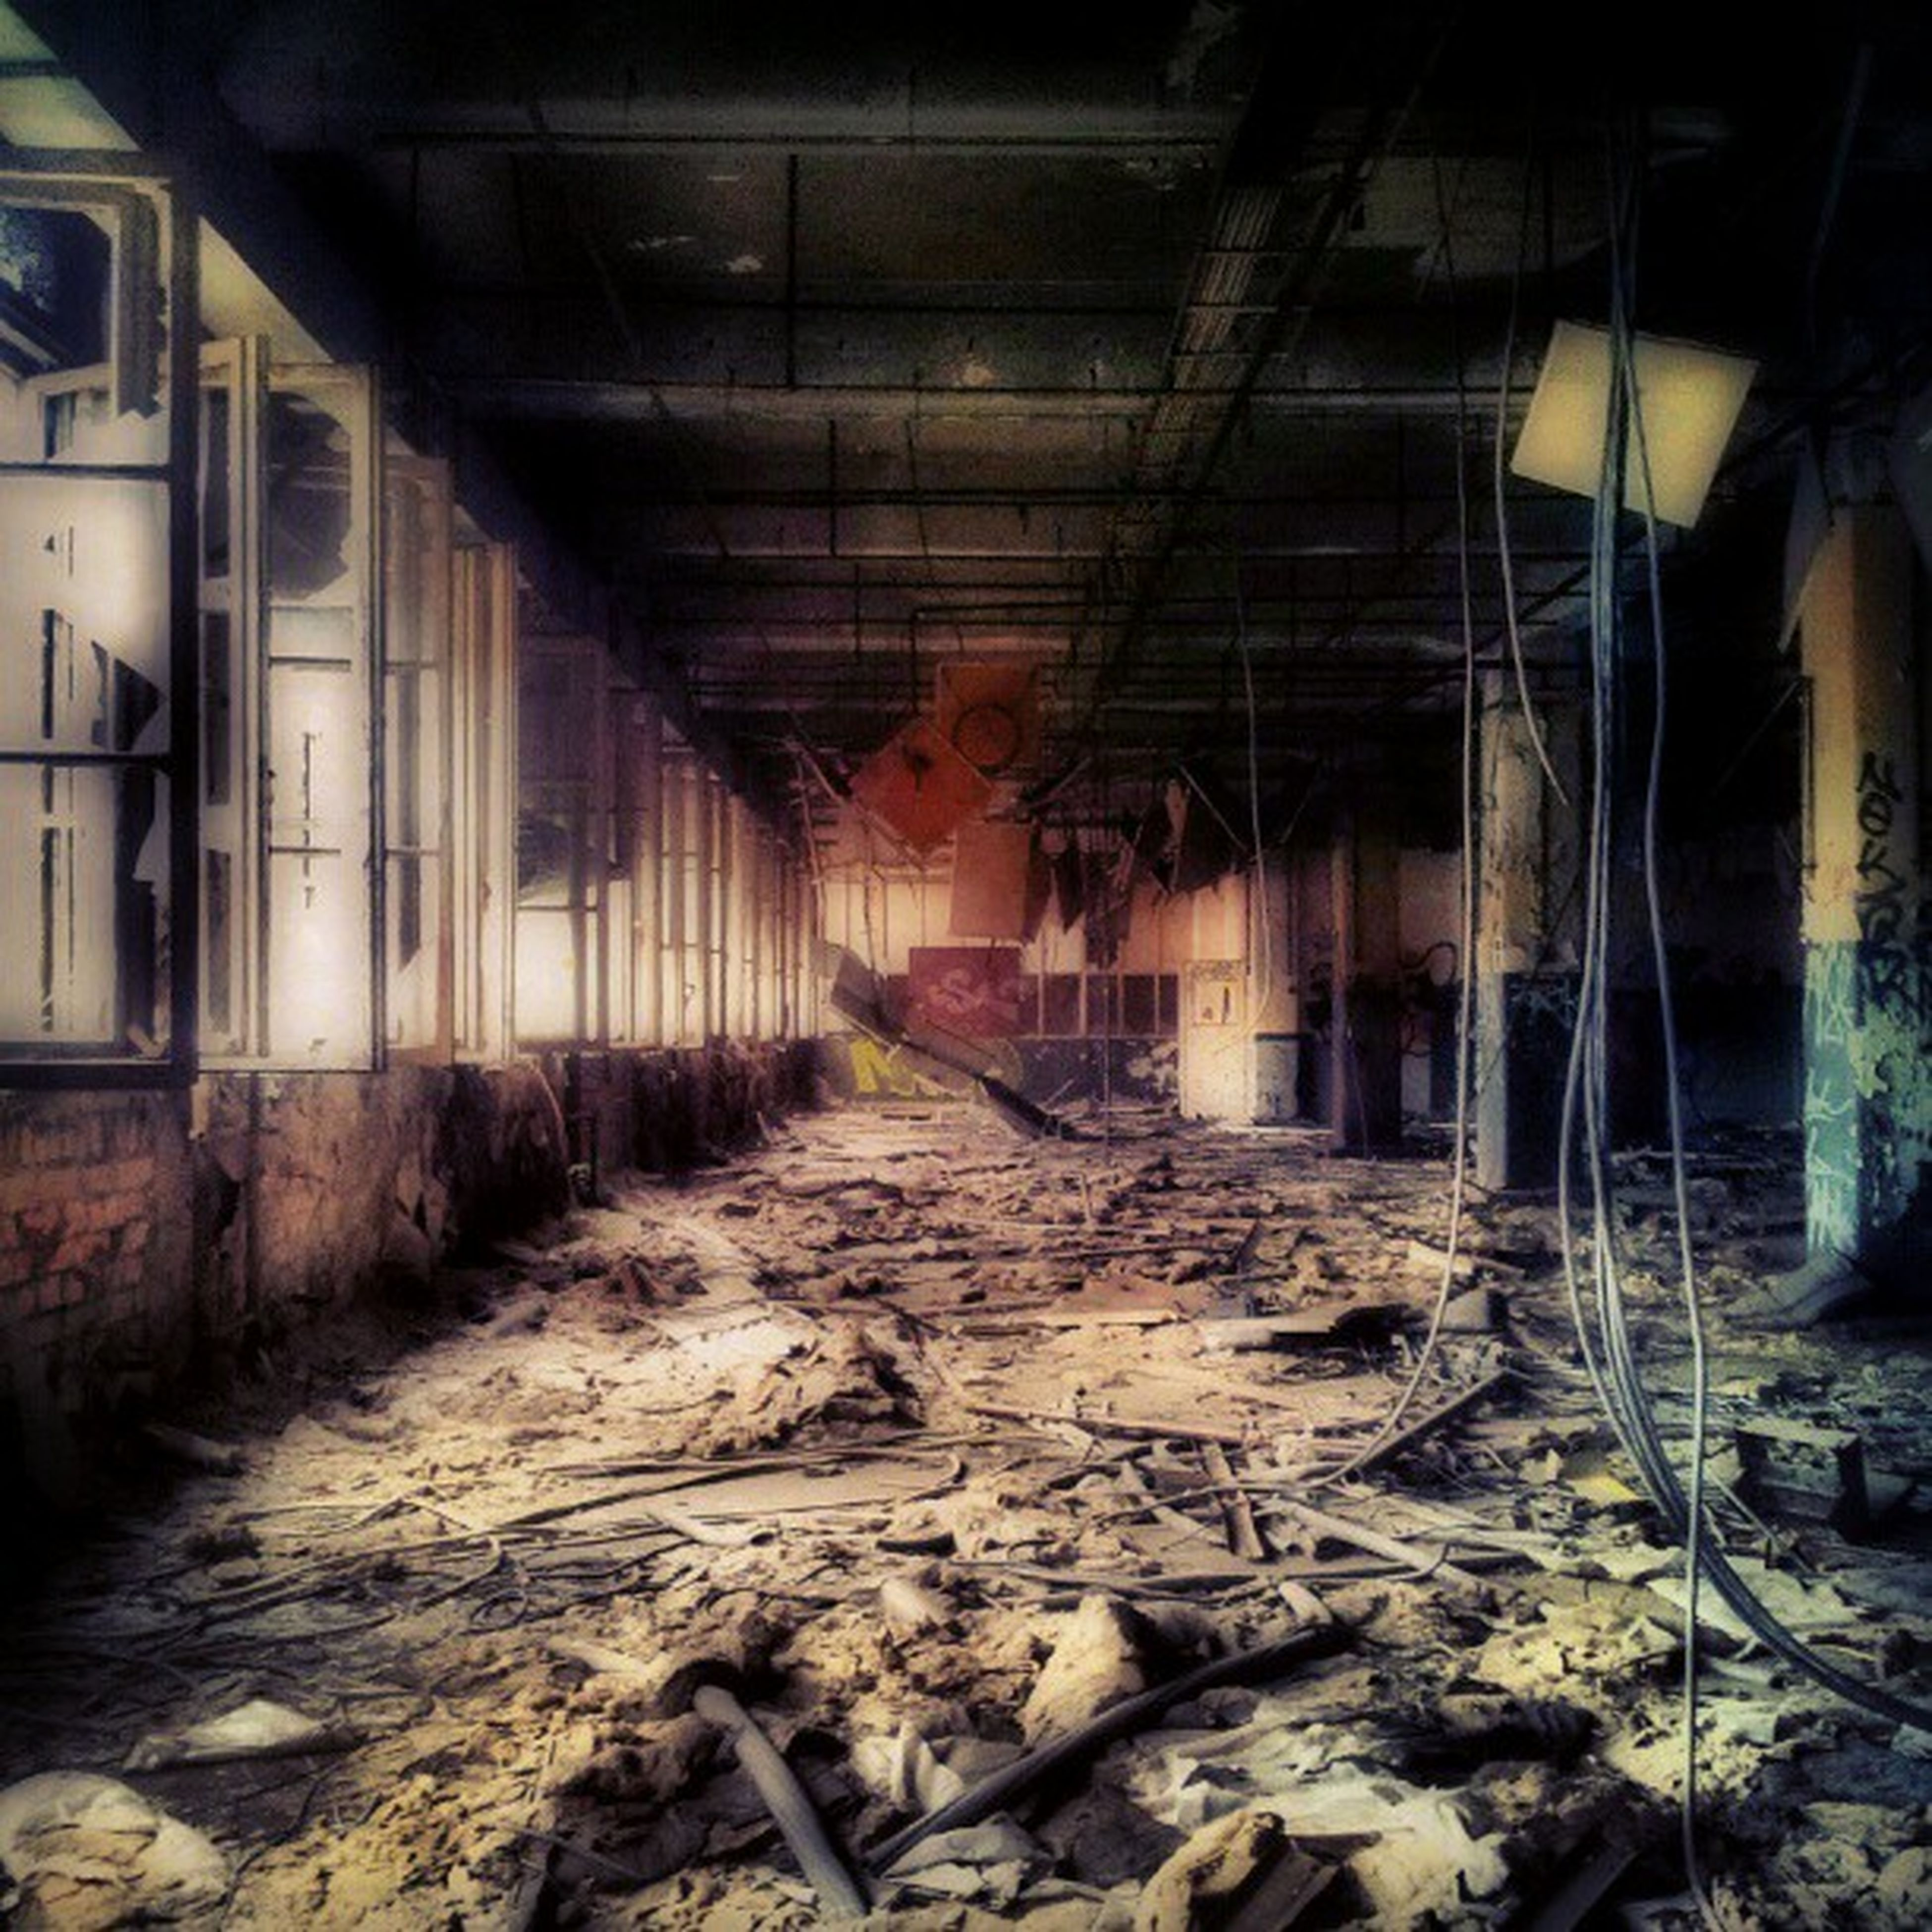 architecture, abandoned, built structure, indoors, obsolete, damaged, run-down, deterioration, the way forward, old, messy, interior, dirty, weathered, diminishing perspective, ceiling, building, bad condition, wall - building feature, destruction